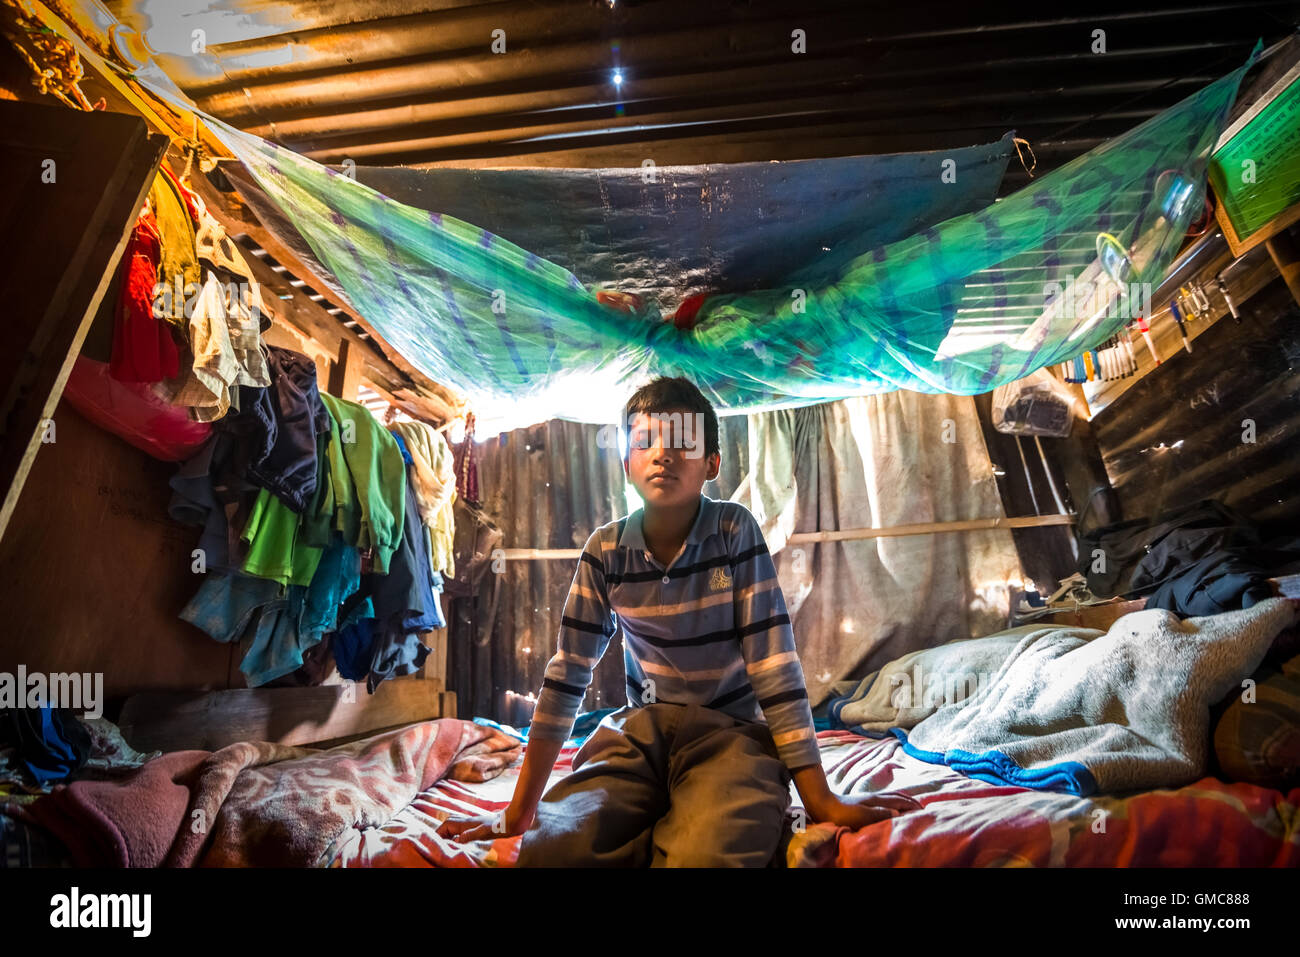 A boy sits in his bedroom on a temporary shelter in Kavrepalanchowk, Nepal. © Reynold Sumayku - Stock Image